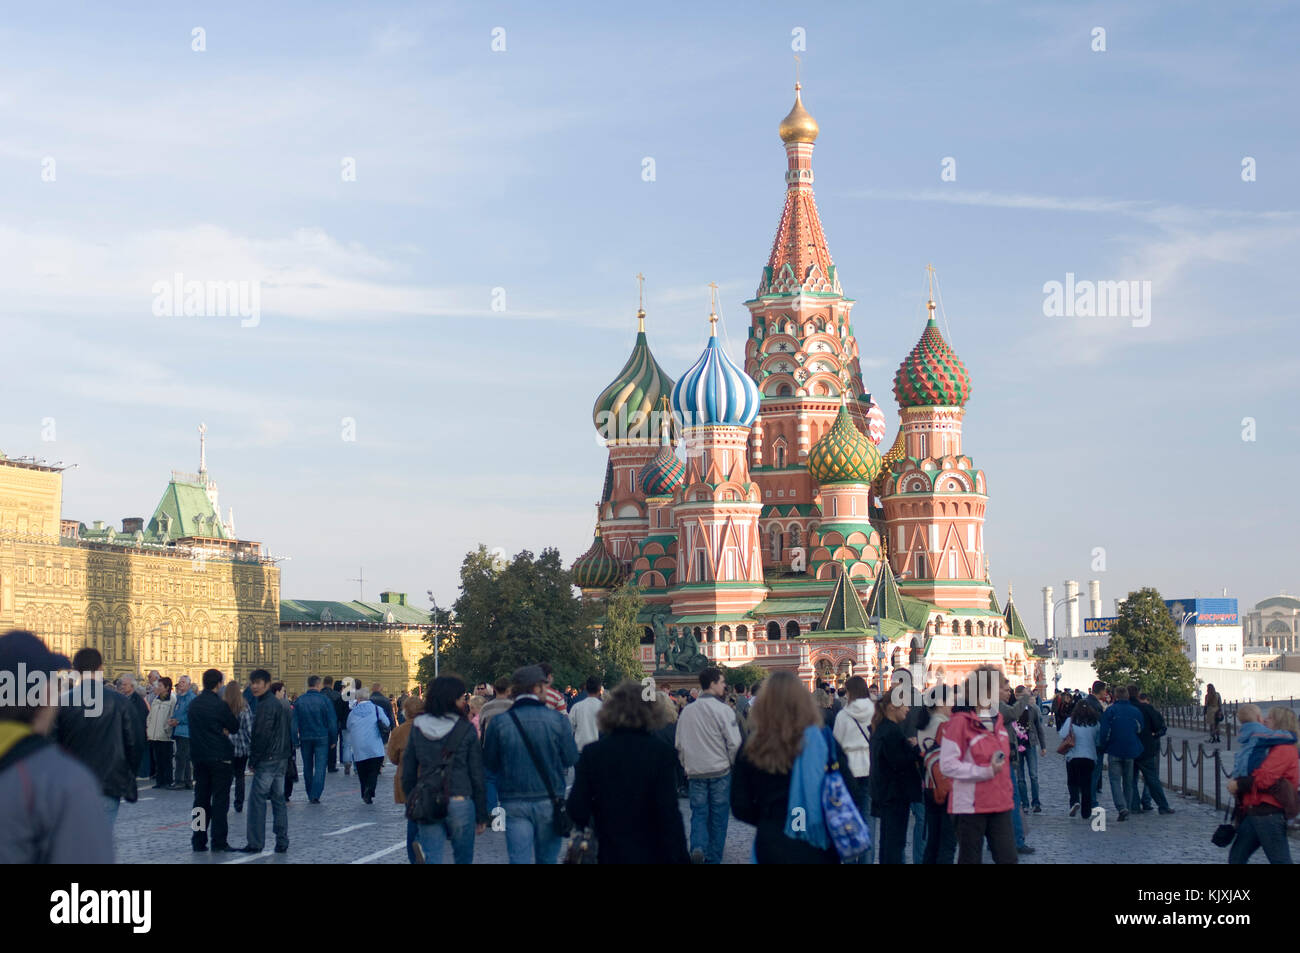 Visitors throng Red Square in Moscow Russia - Stock Image